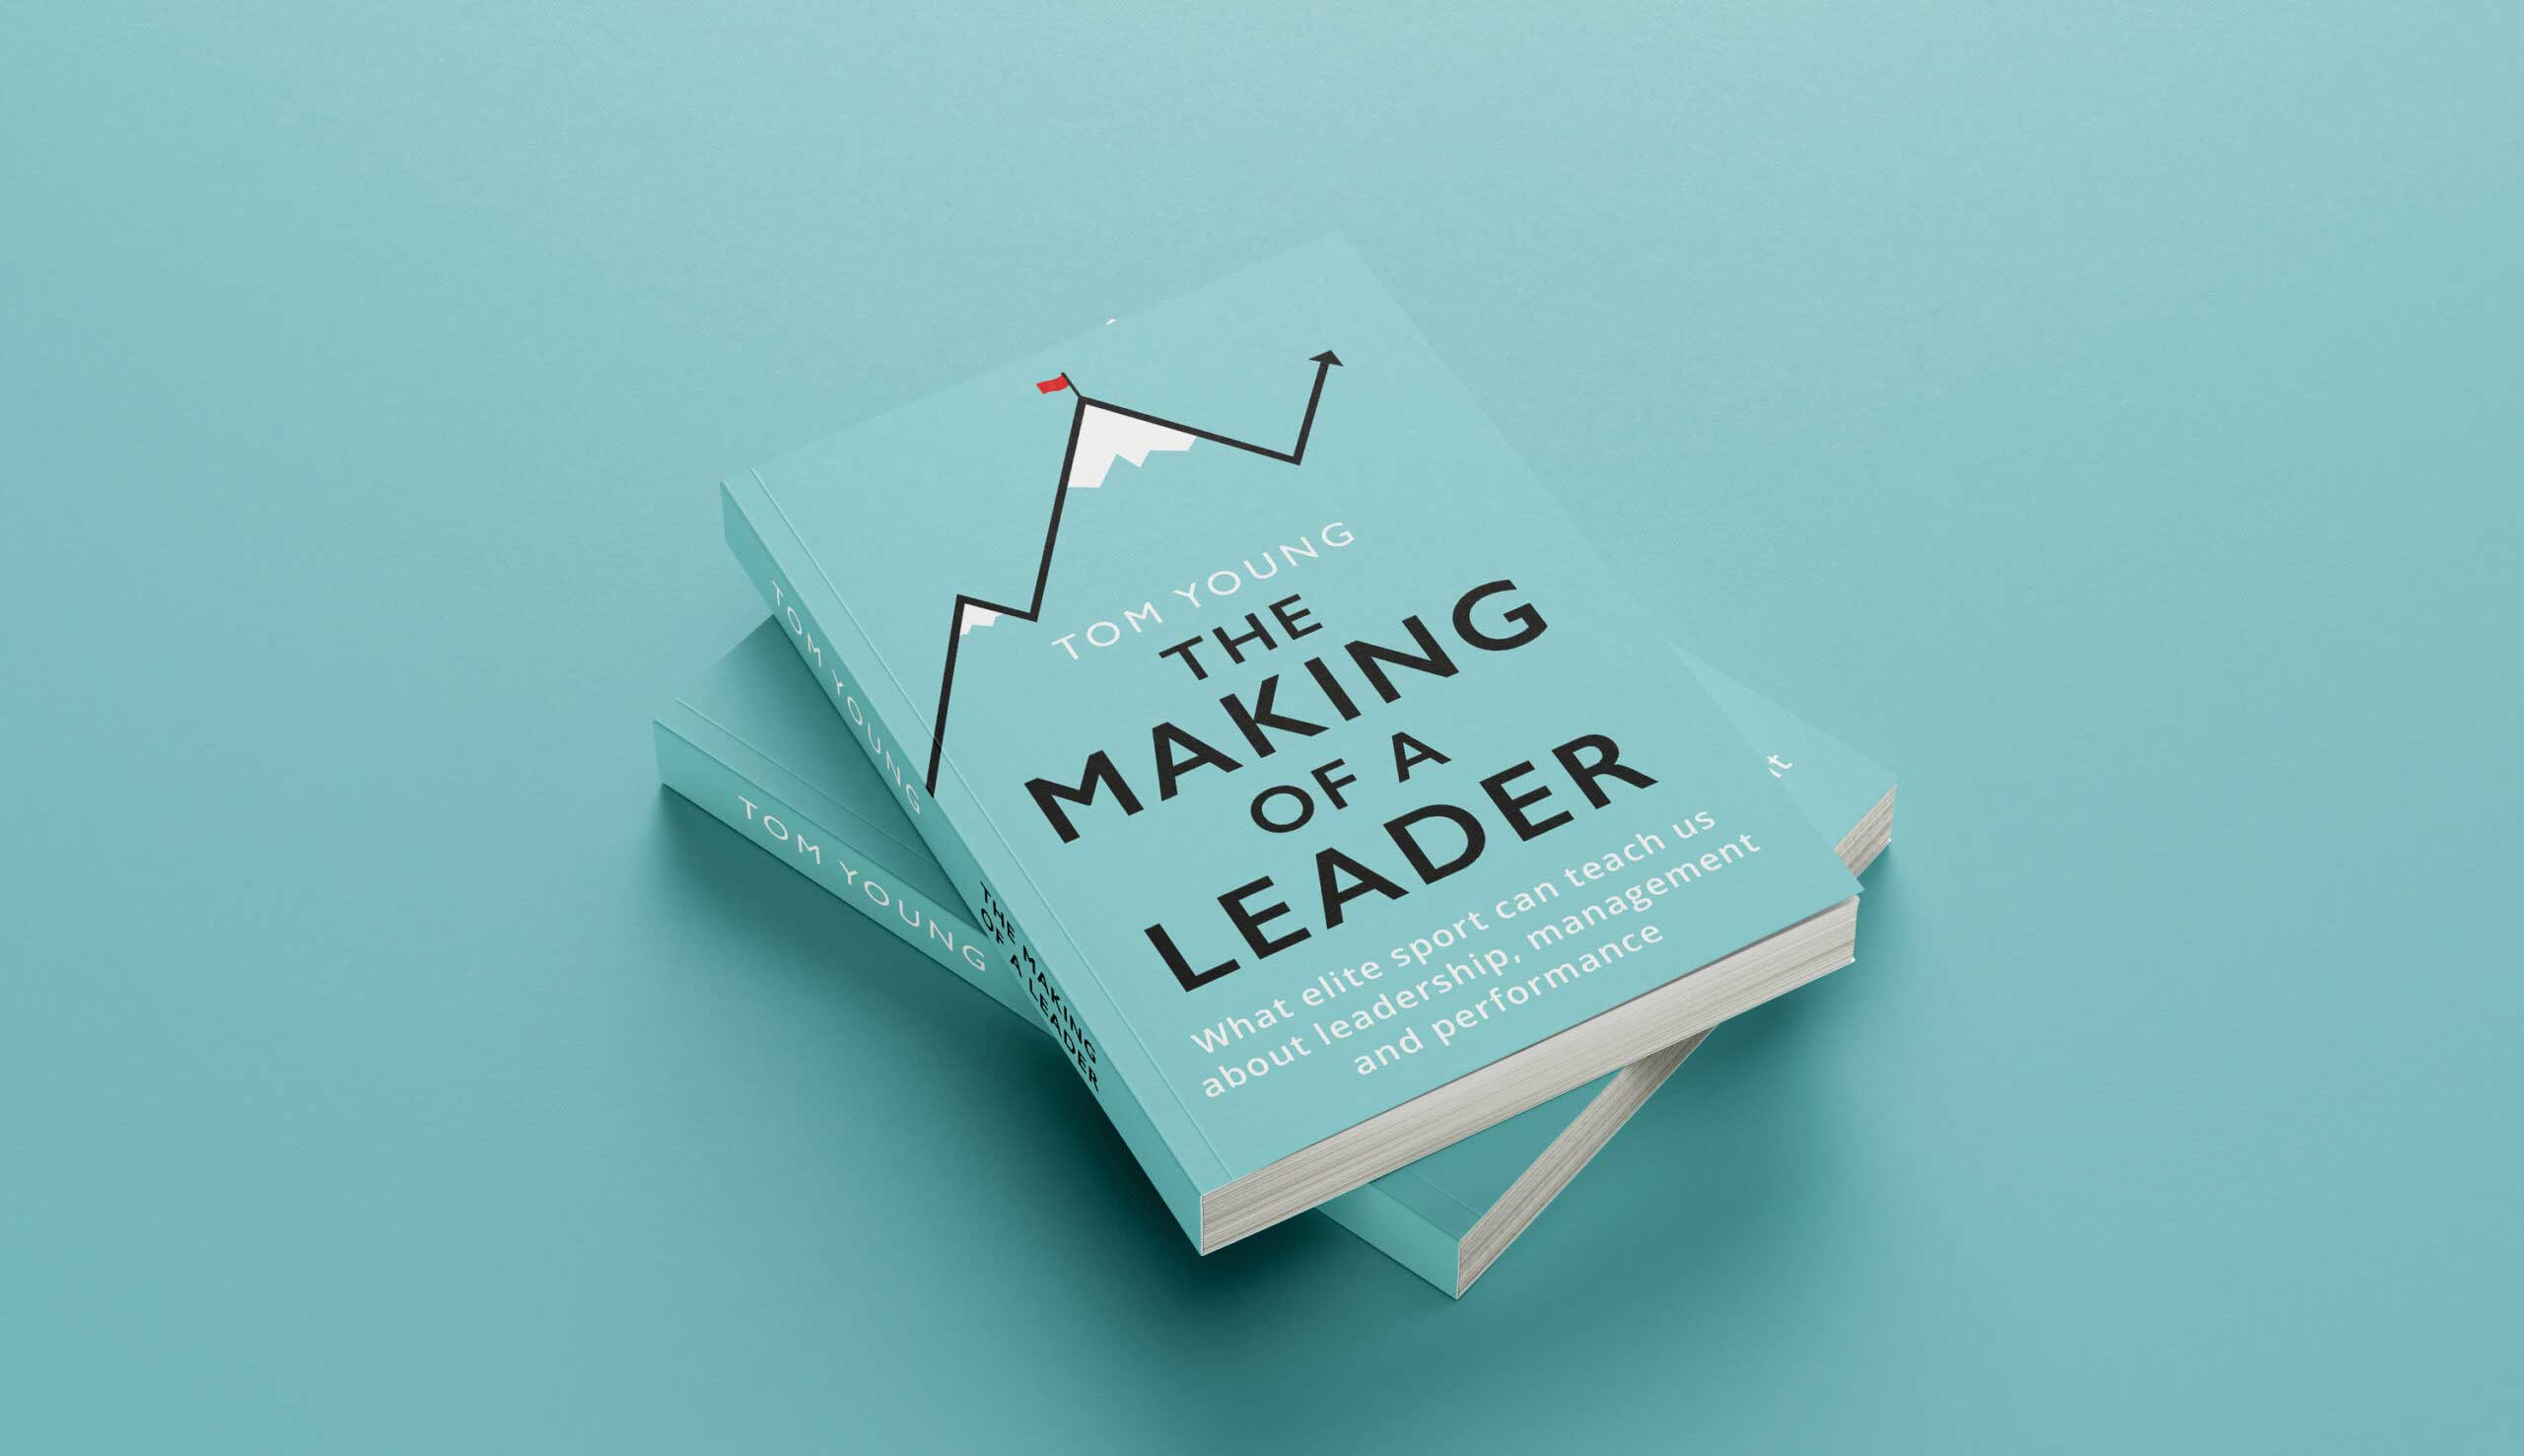 The Making of a Leader: Assessing Culture